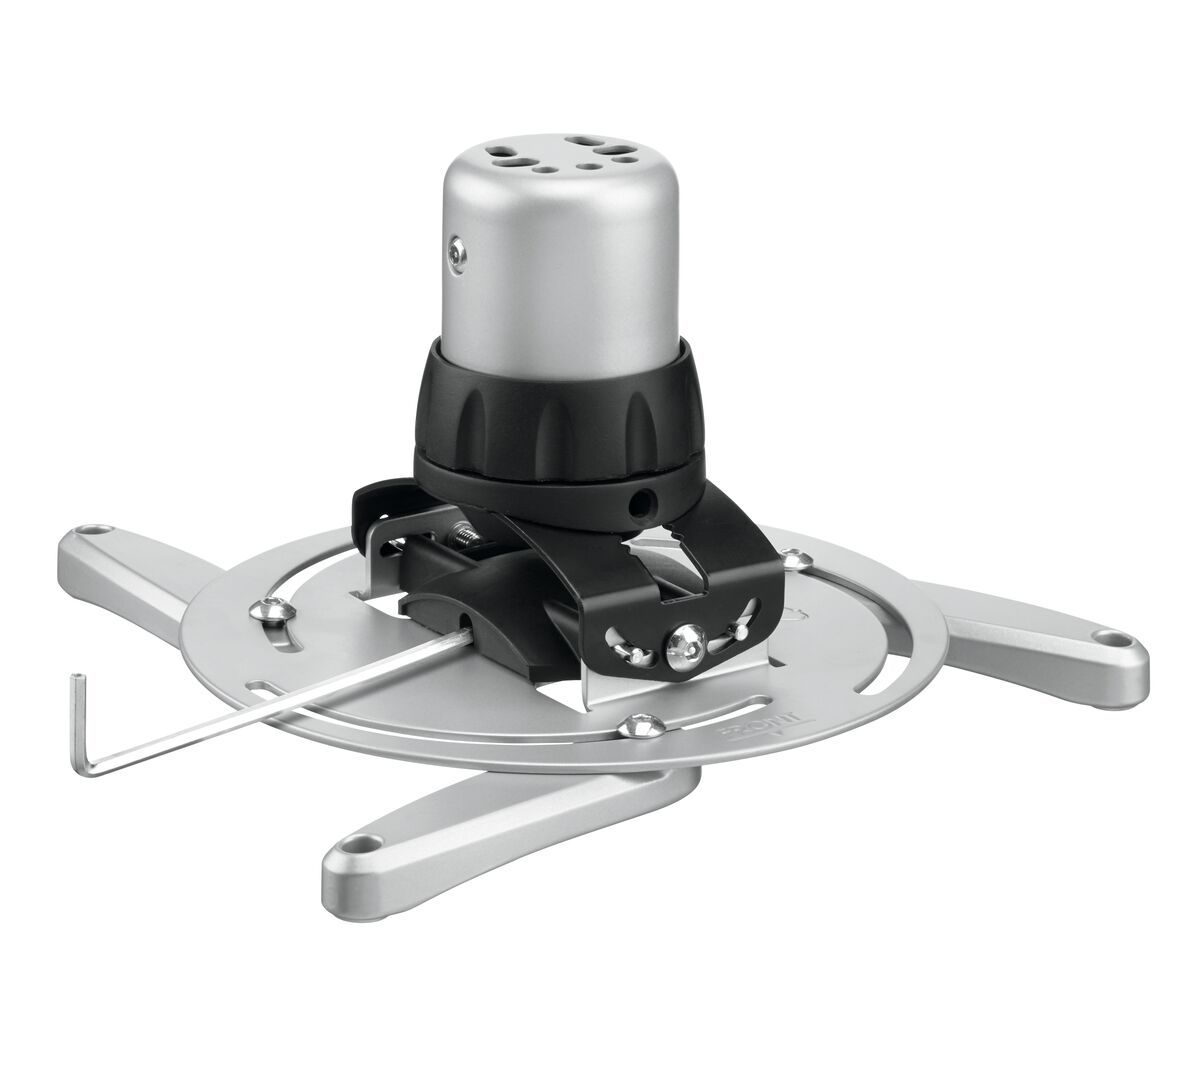 Vogel's PPC 1500 Projector ceiling mount white - Detail